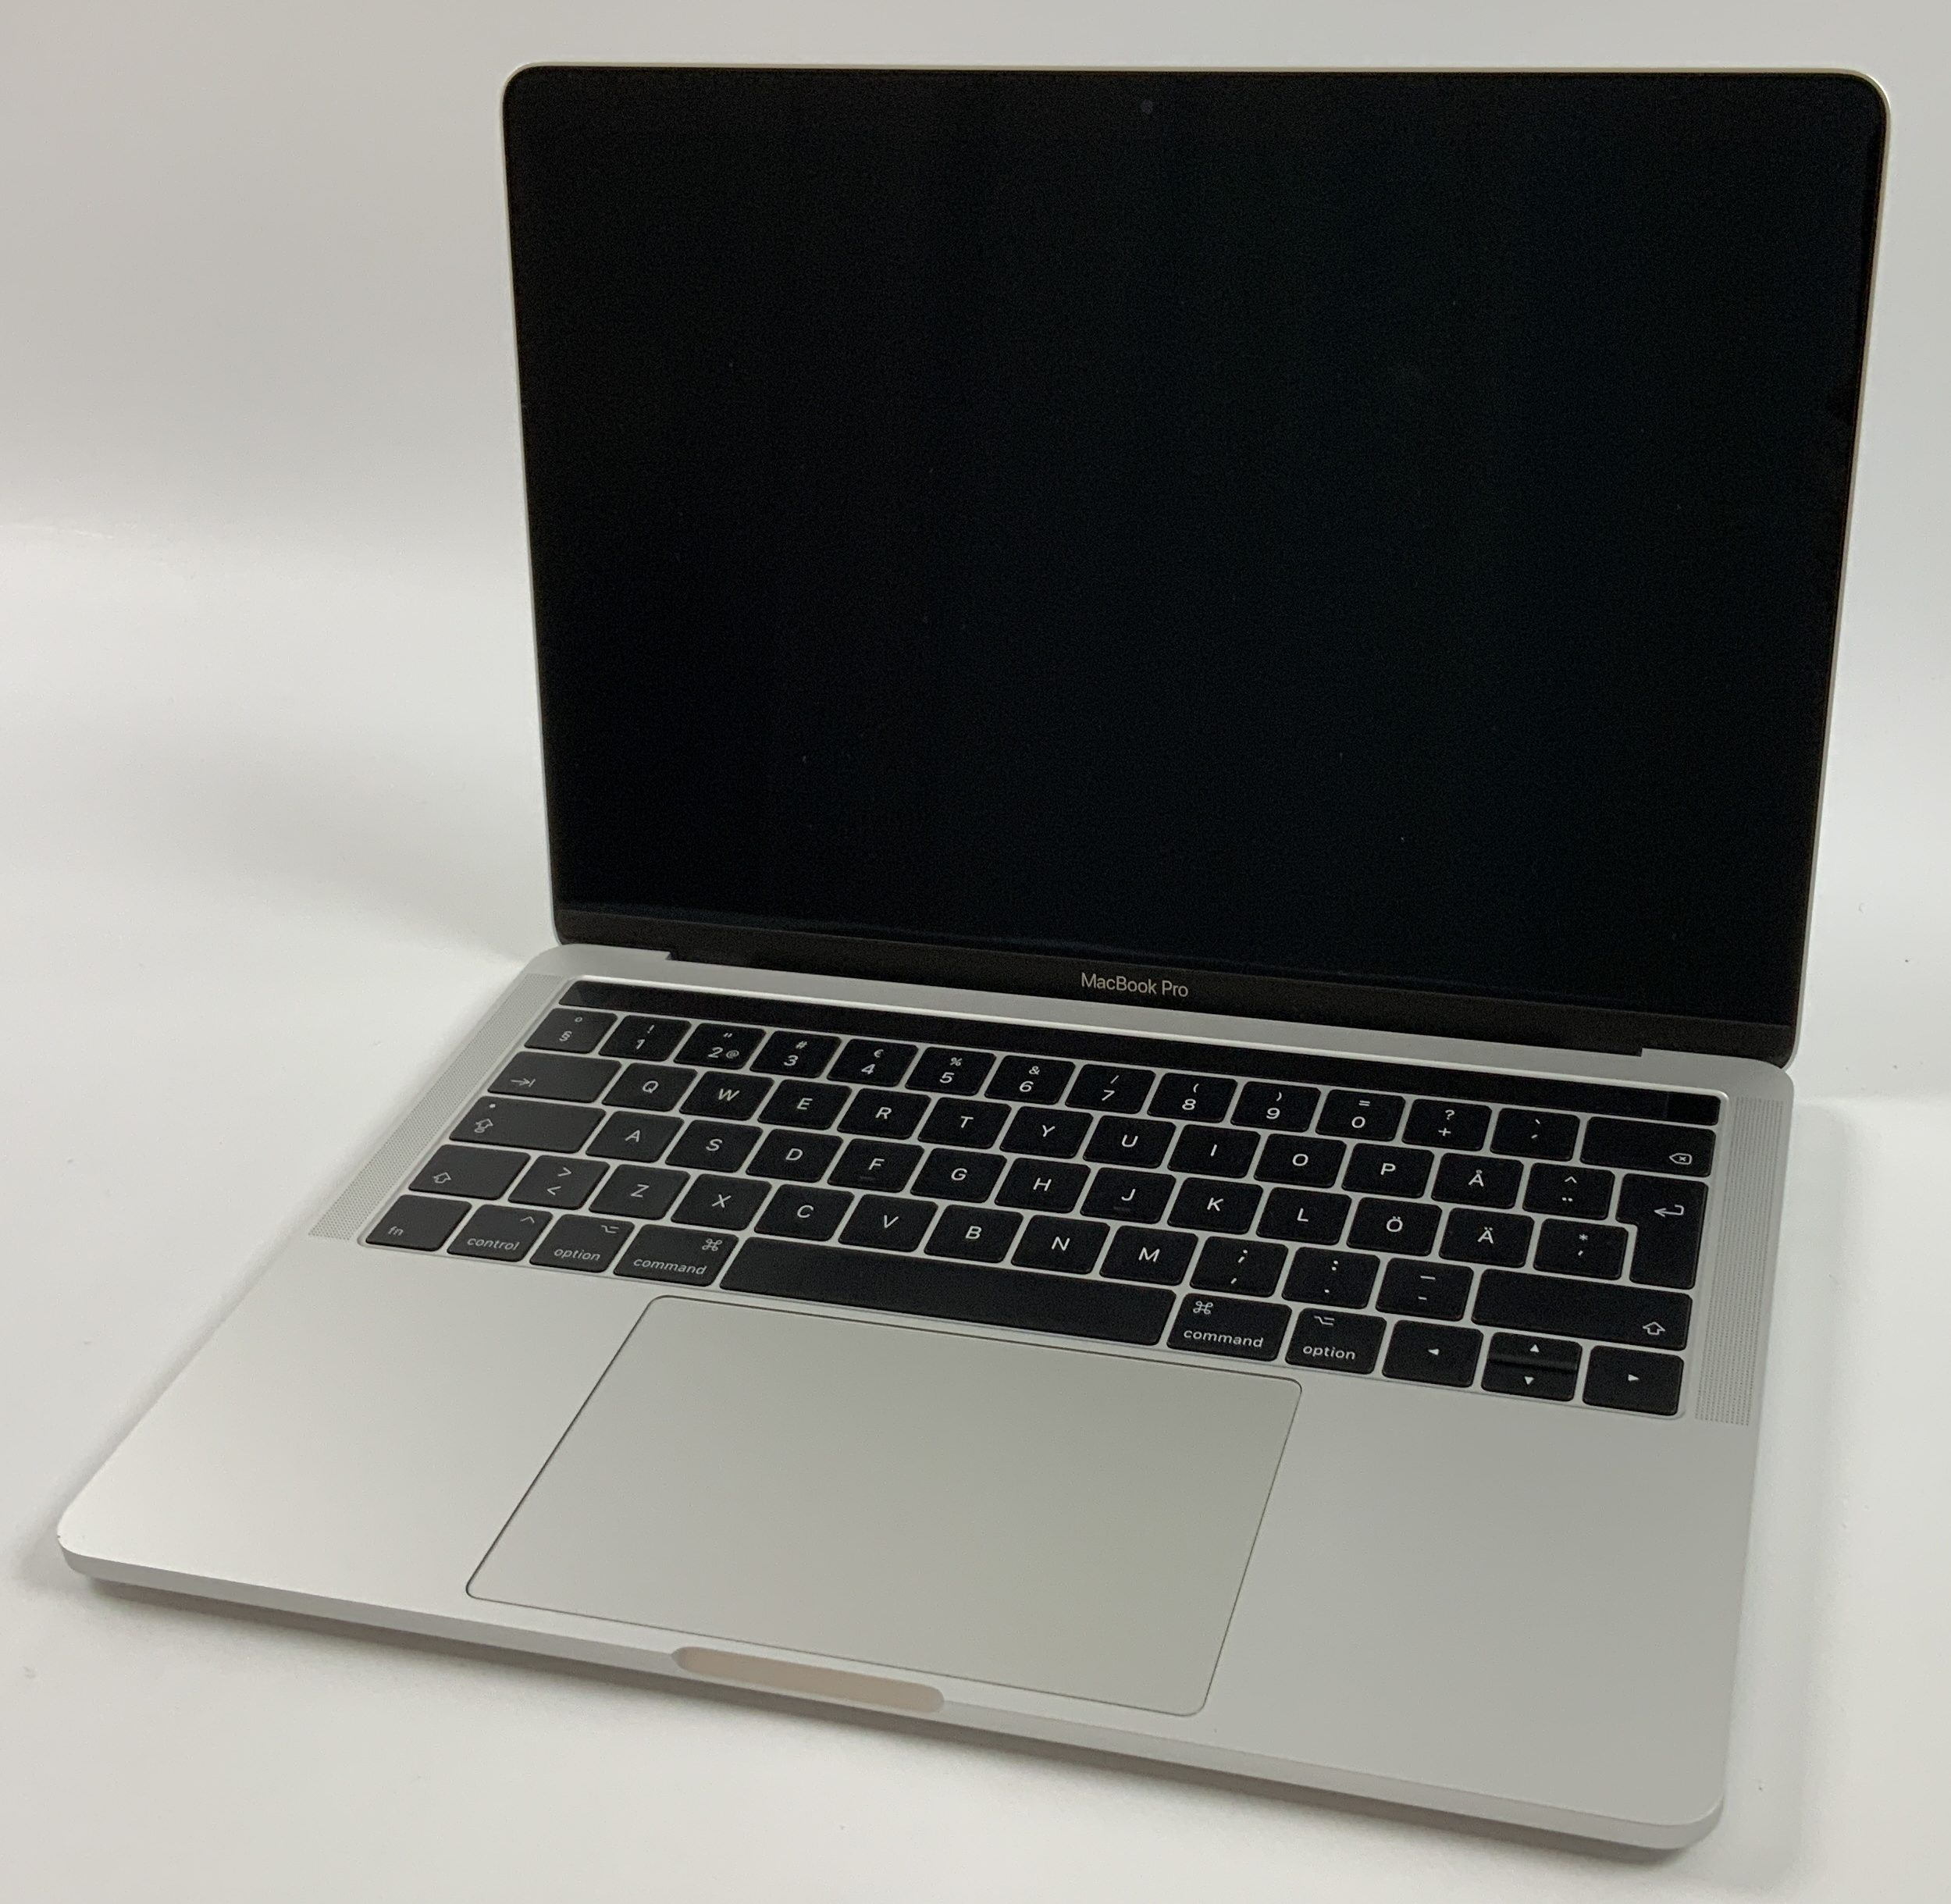 "MacBook Pro 13"" 4TBT Mid 2017 (Intel Core i5 3.1 GHz 8 GB RAM 512 GB SSD), Silver, Intel Core i5 3.1 GHz, 8 GB RAM, 512 GB SSD, imagen 1"